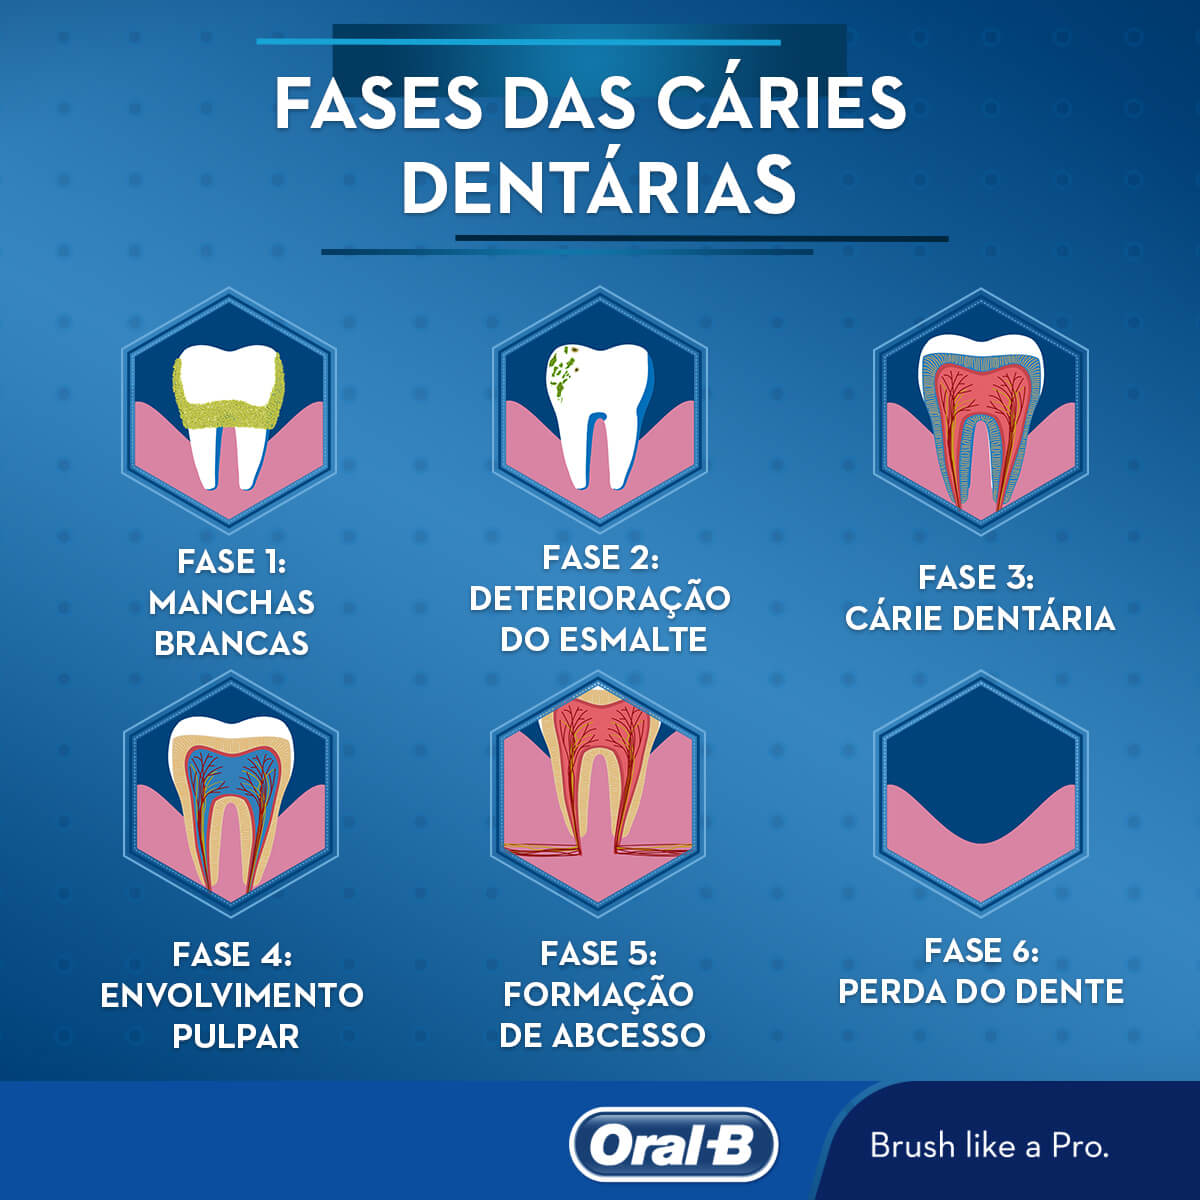 As fases das cáries dentárias